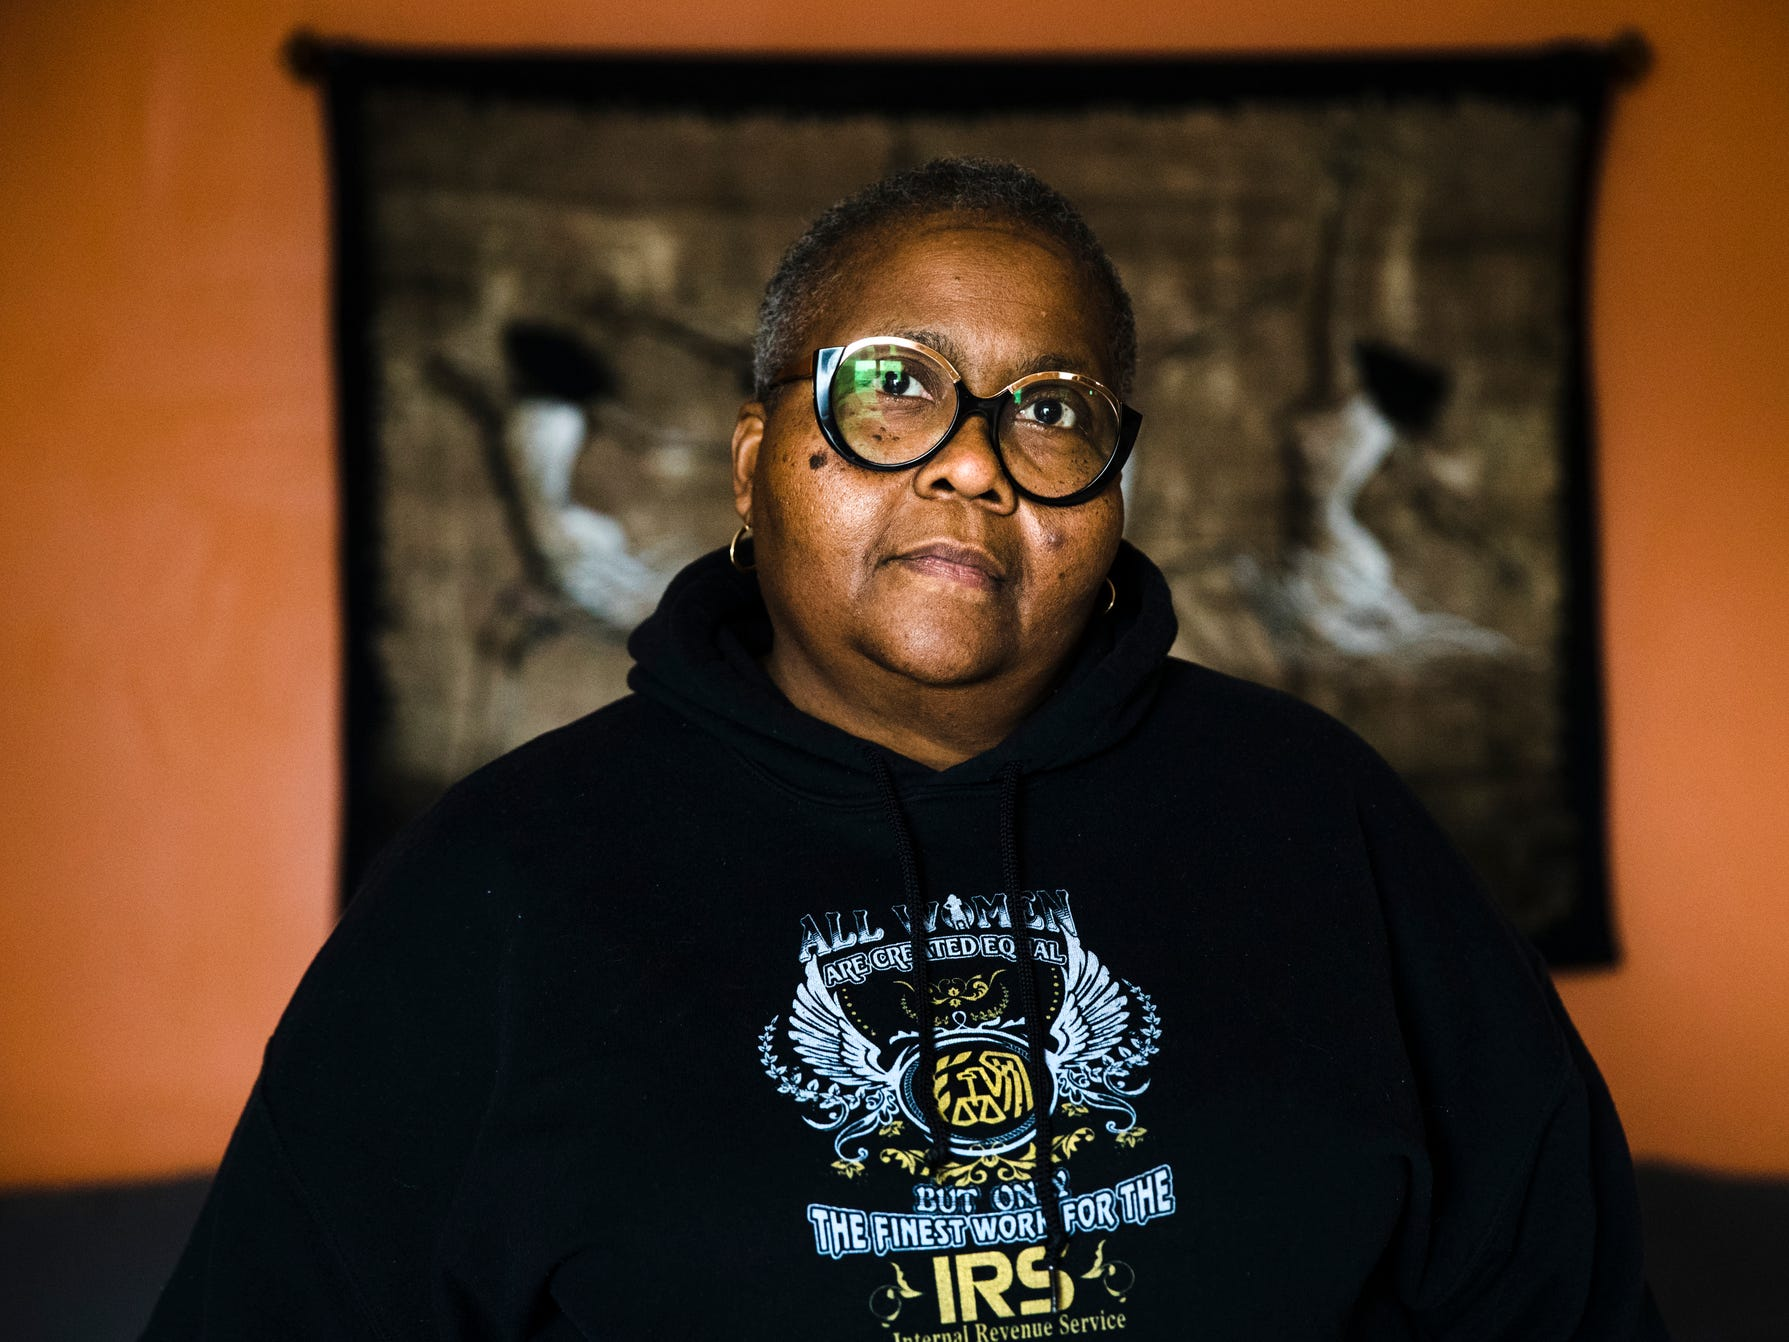 Nora Brooks a furloughed customer service representative for the Internal Revenue Service poses for a photograph at her home in Philadelphia, Jan. 3, 2019.   Brooks has been furloughed, worrying about whether she will need to seek a second job. The agency requires pre-approval to avoid conflicts of interest, but there's no one in the office to sign off.